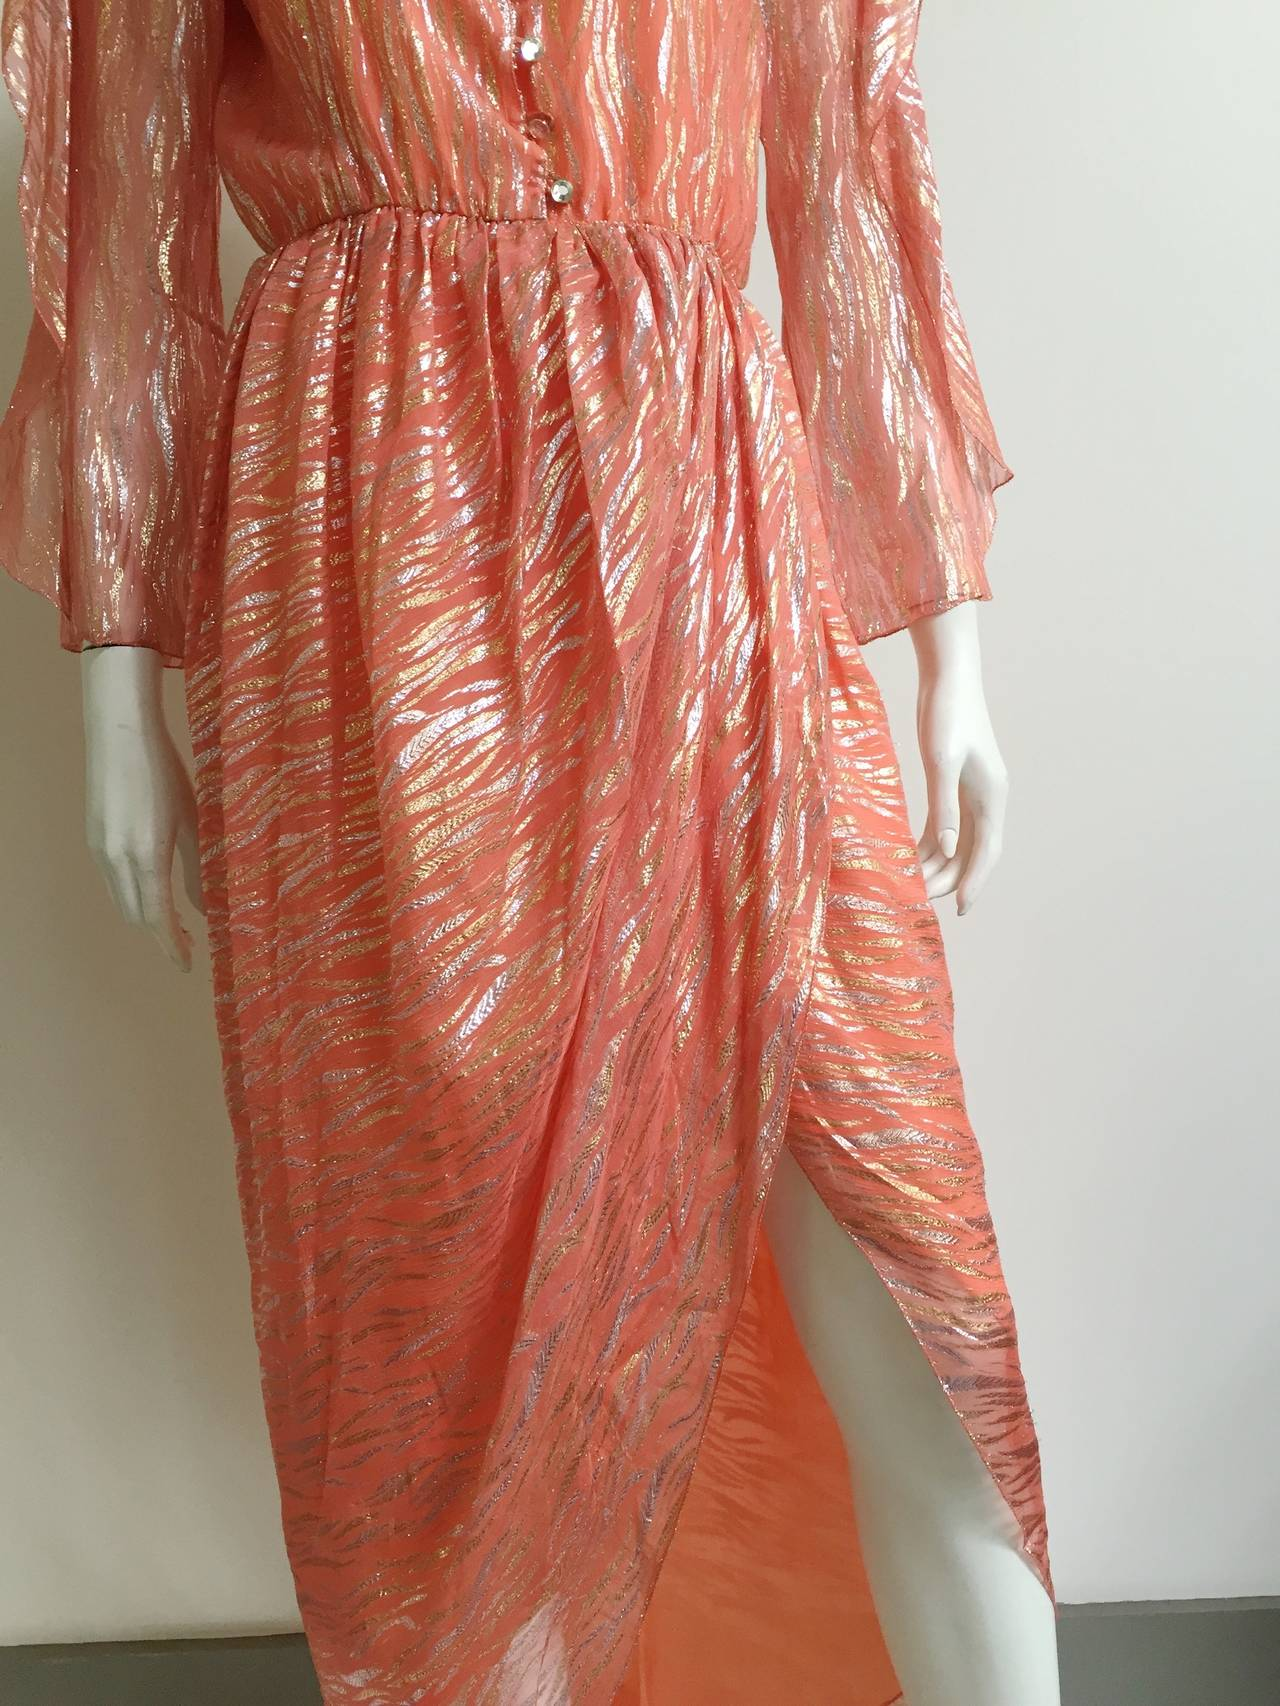 Women's Stephen Burrows wrap dress size 4, 1980s  For Sale